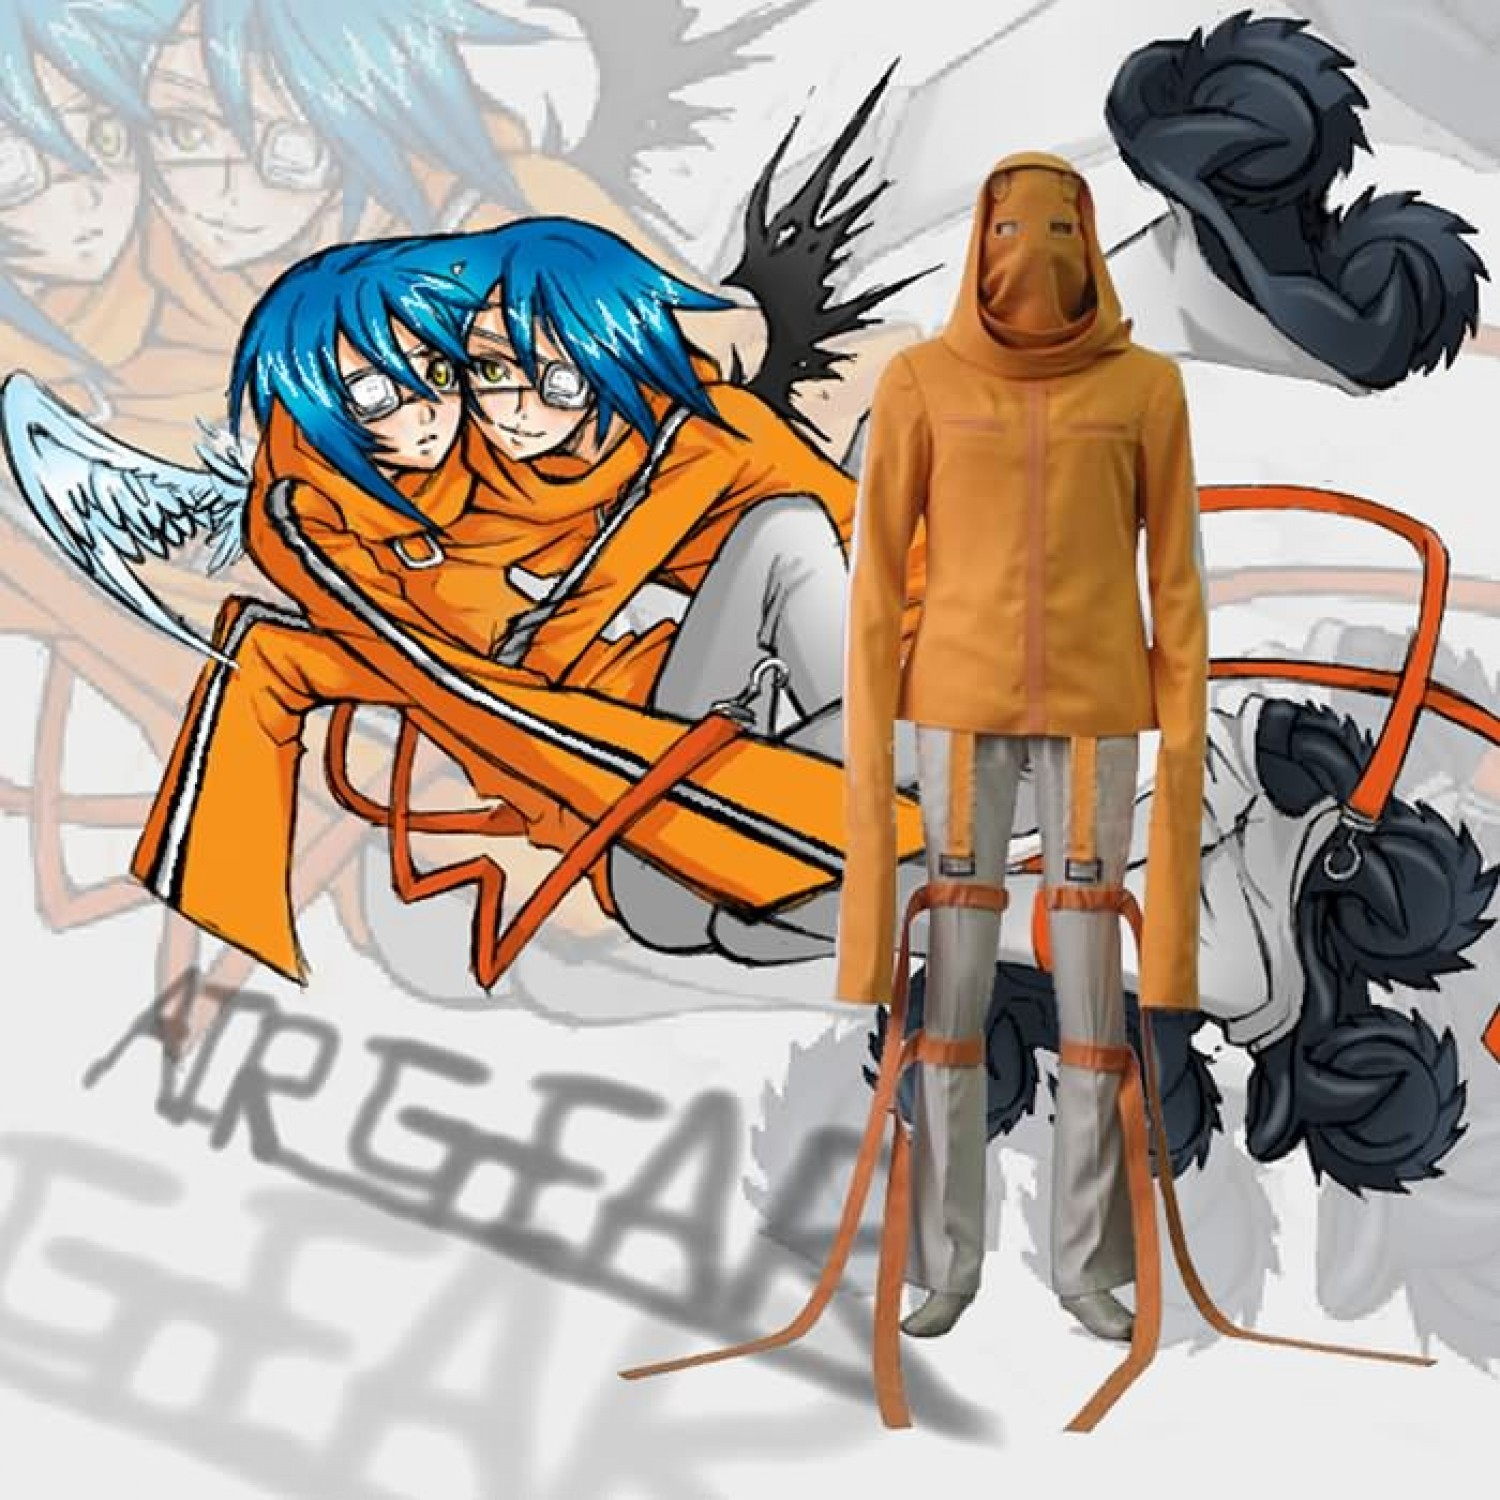 Air Gear Akito Agito Wanijima Cosplay Outfits Costumes